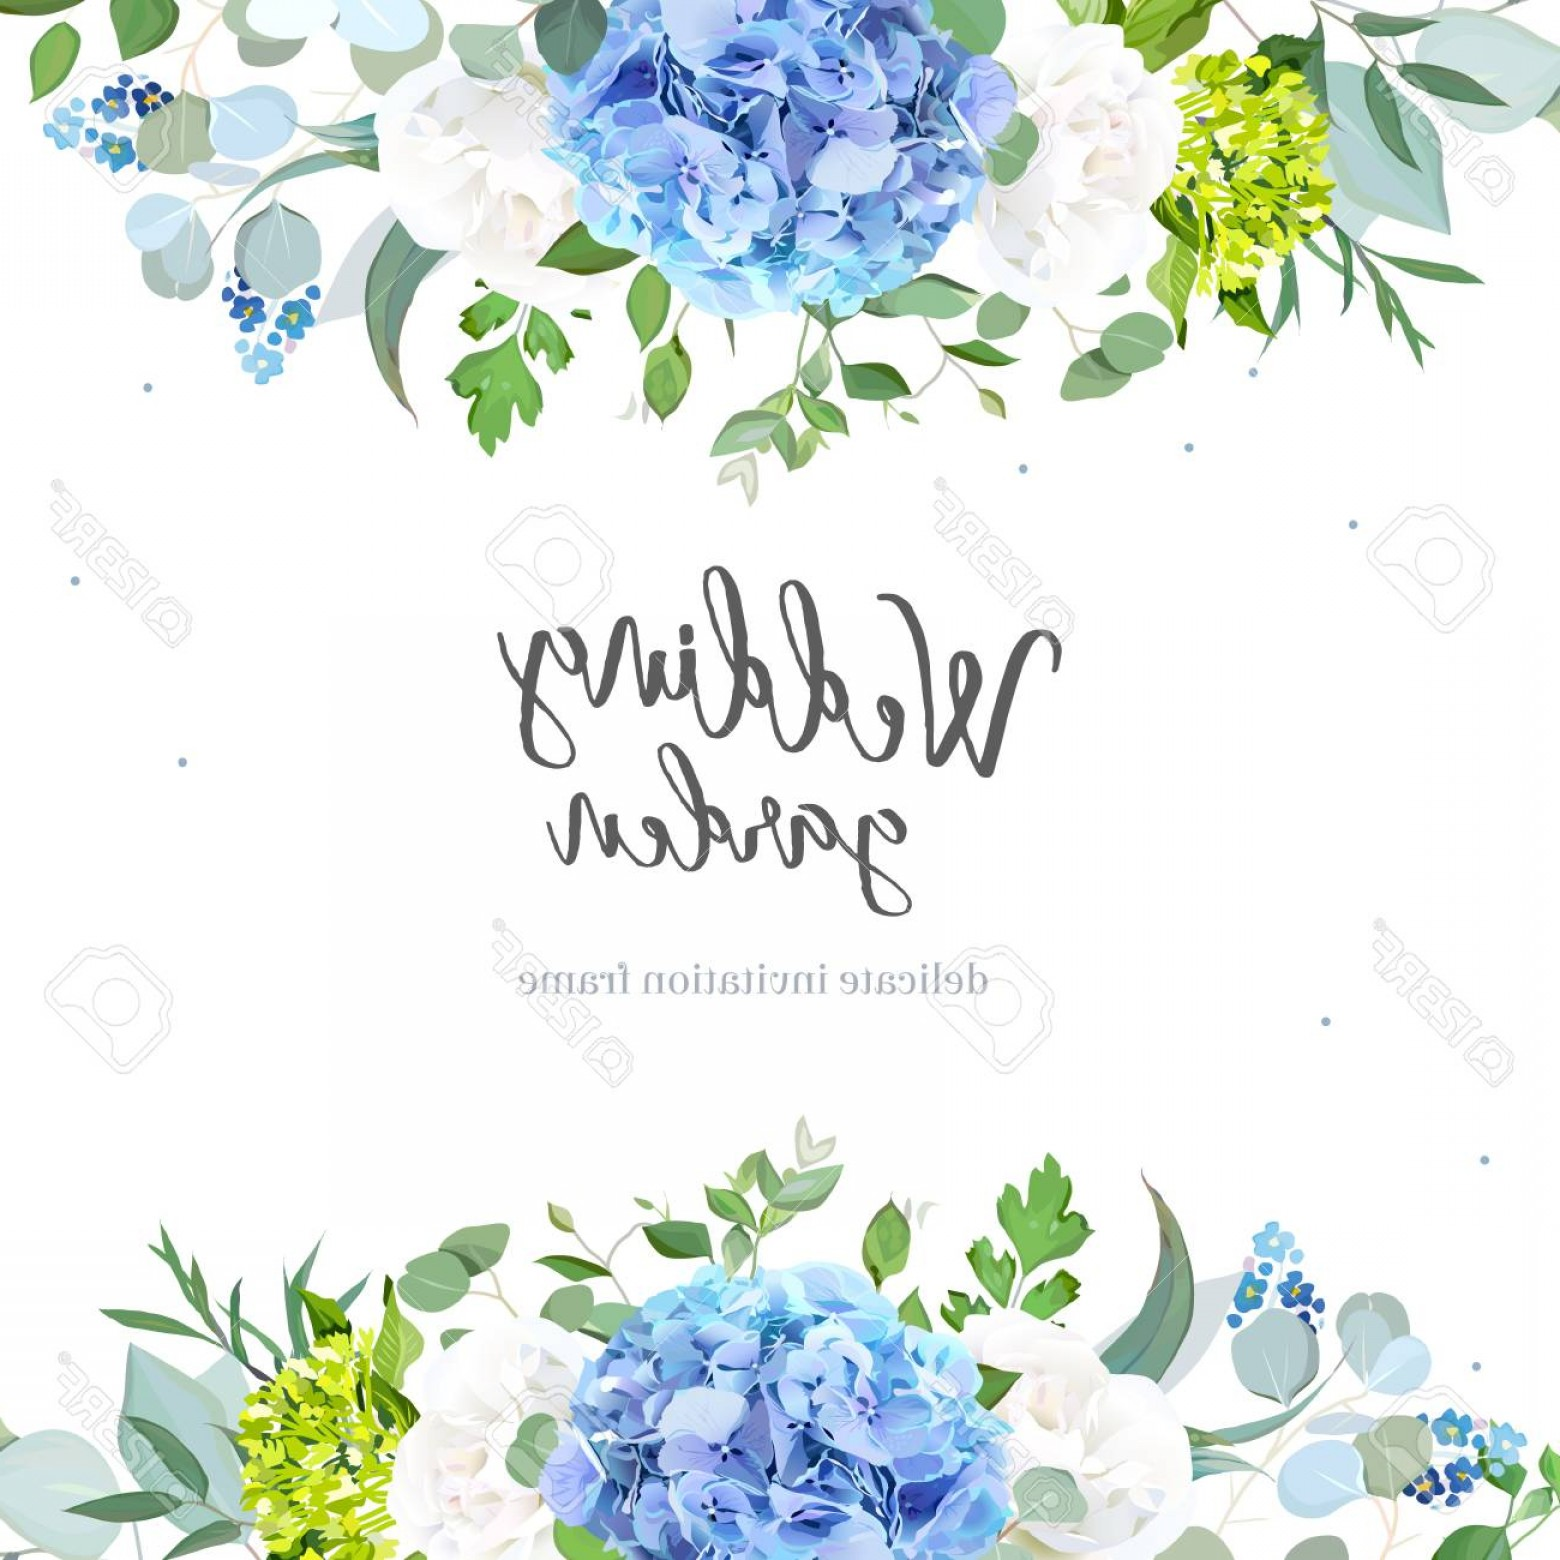 Vector Image Blue Hydrangeas: Photostock Vector Light Blue Hydrangea White Rose Forget Me Not Wildflowers Euc